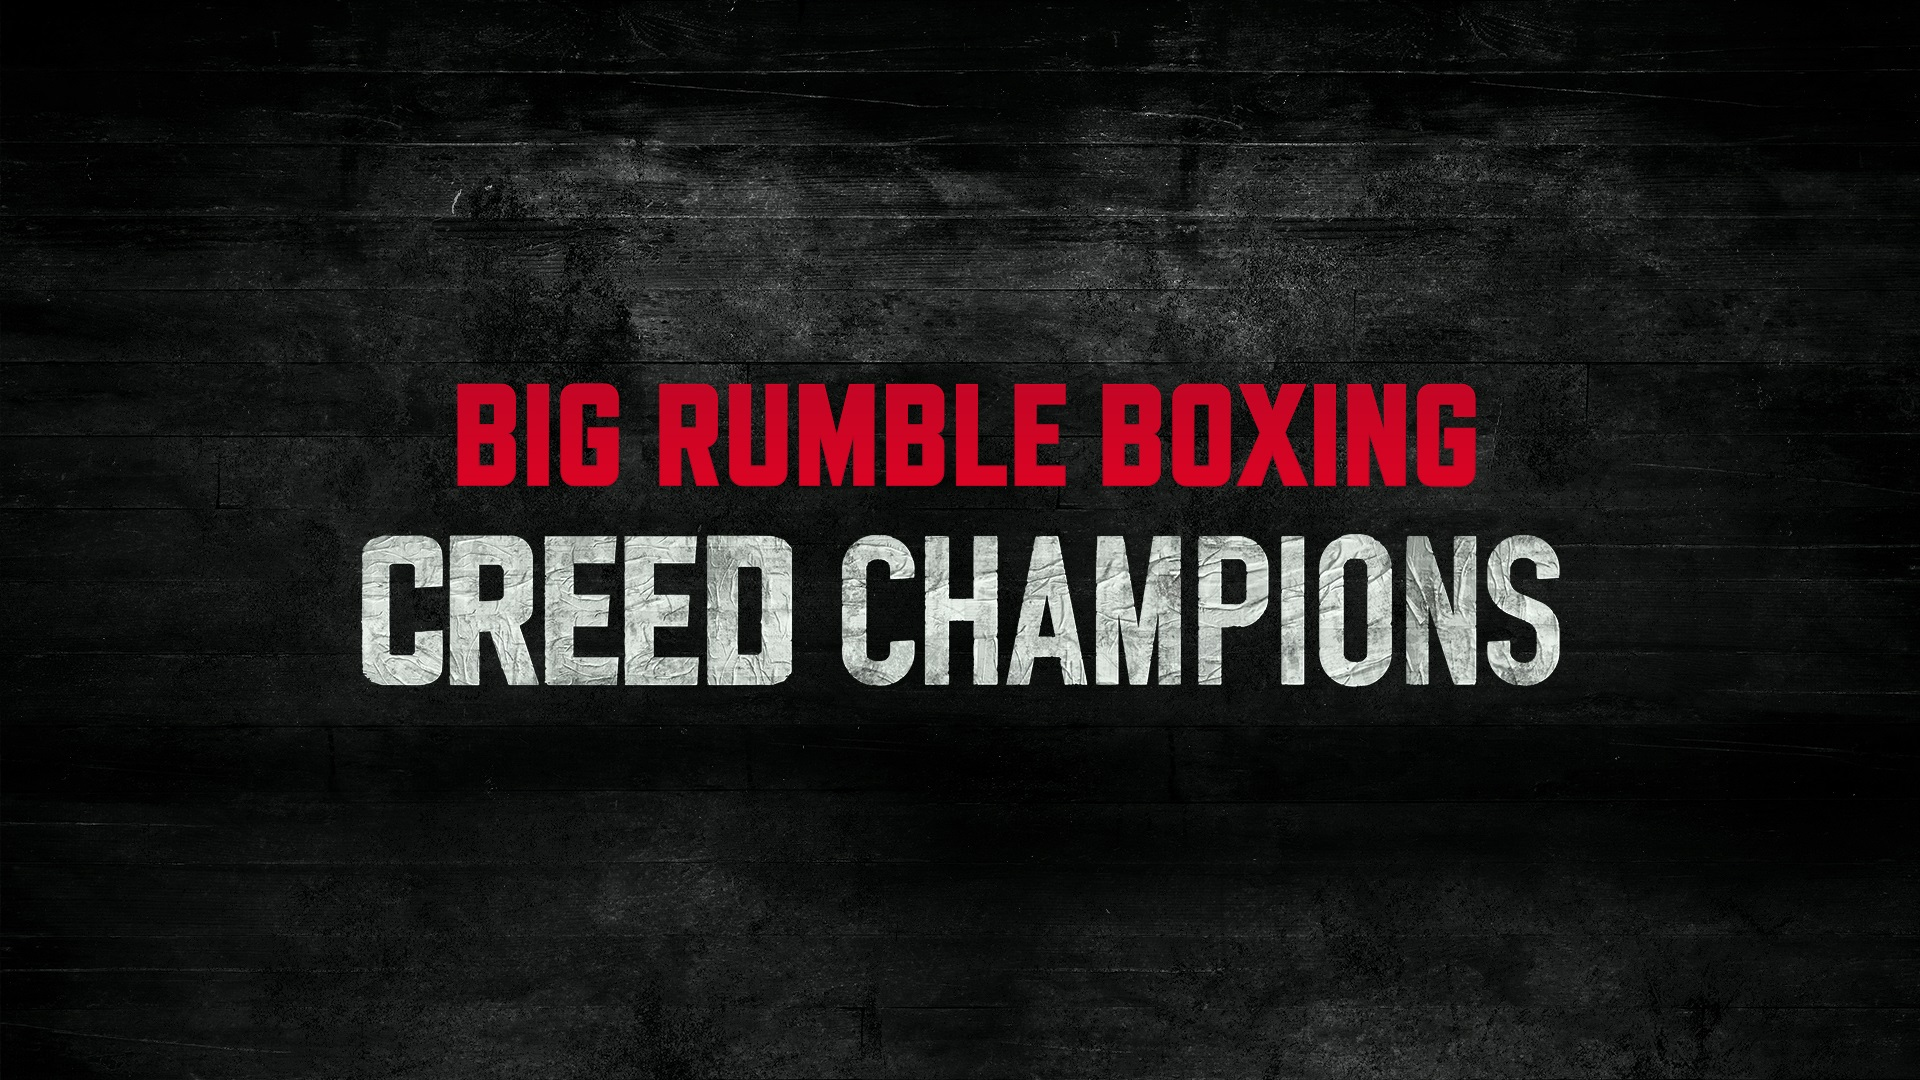 Big-Rumble-Boxing-Creed-Champions